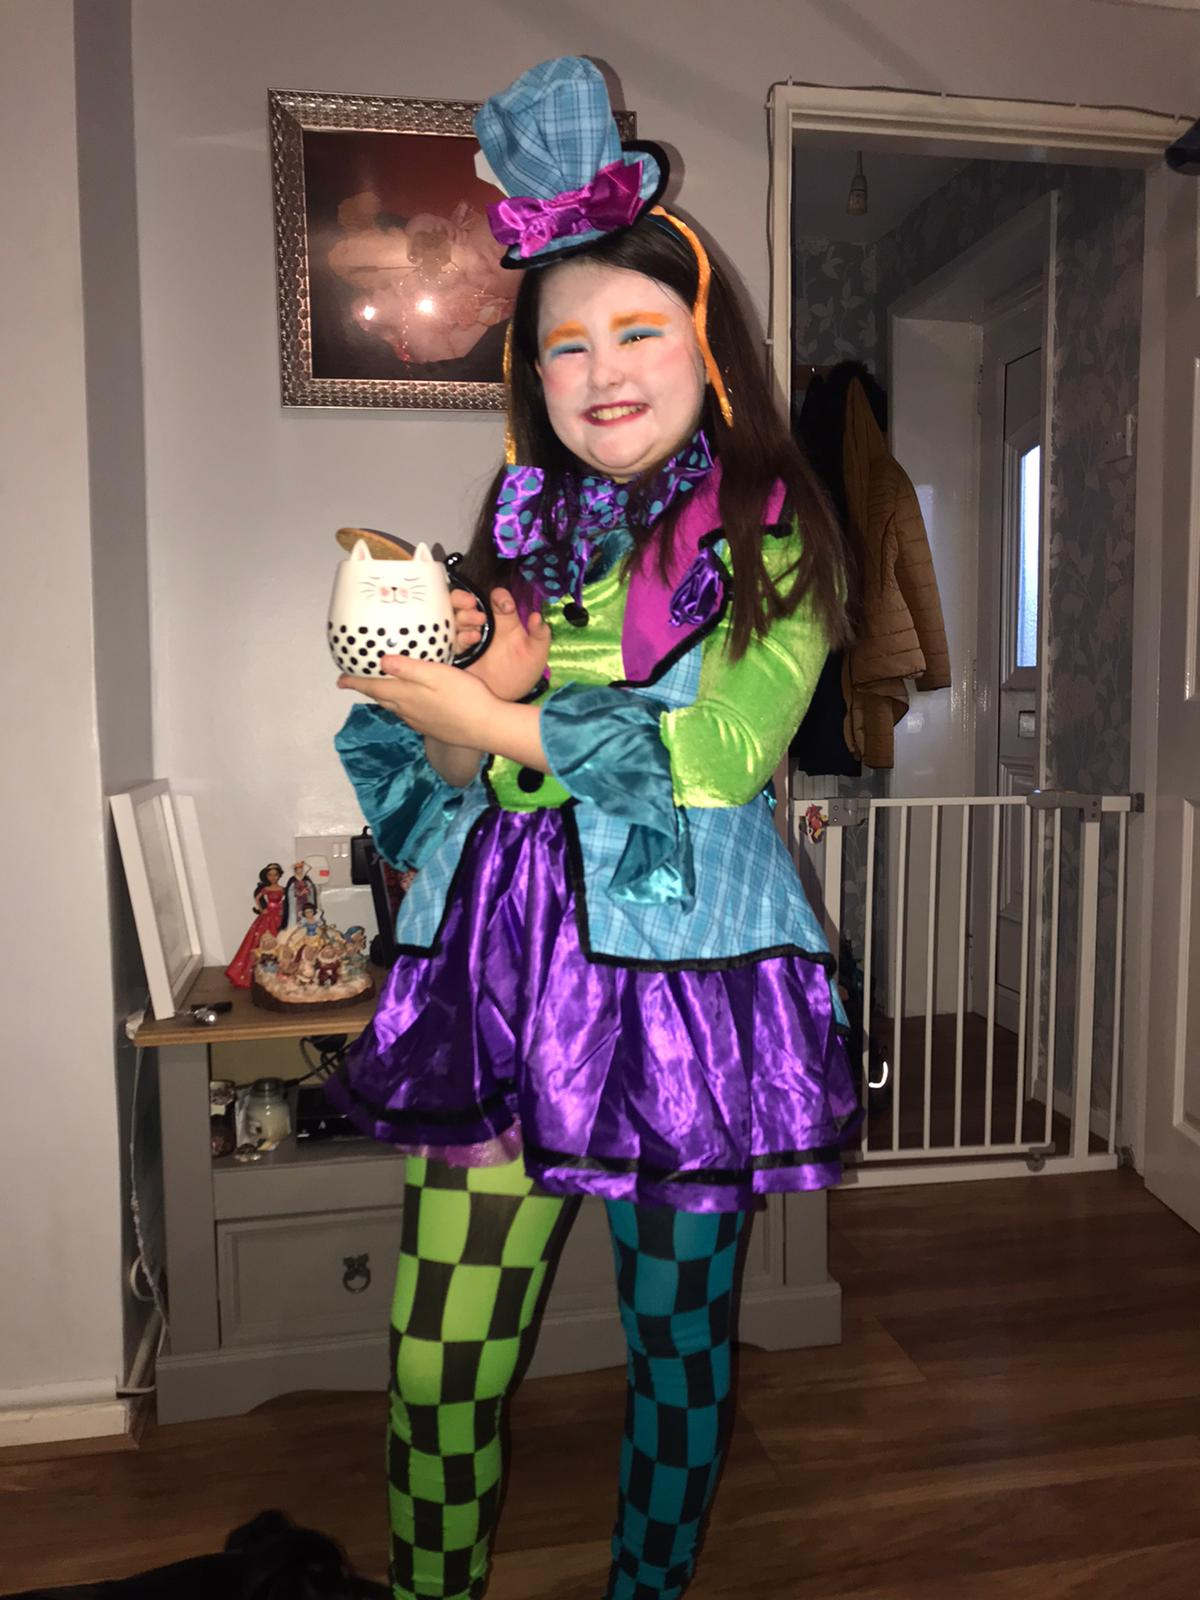 Droitwich Advertiser: My girls Mia age 7 cheshire catMaisie age 9 the mad hatter